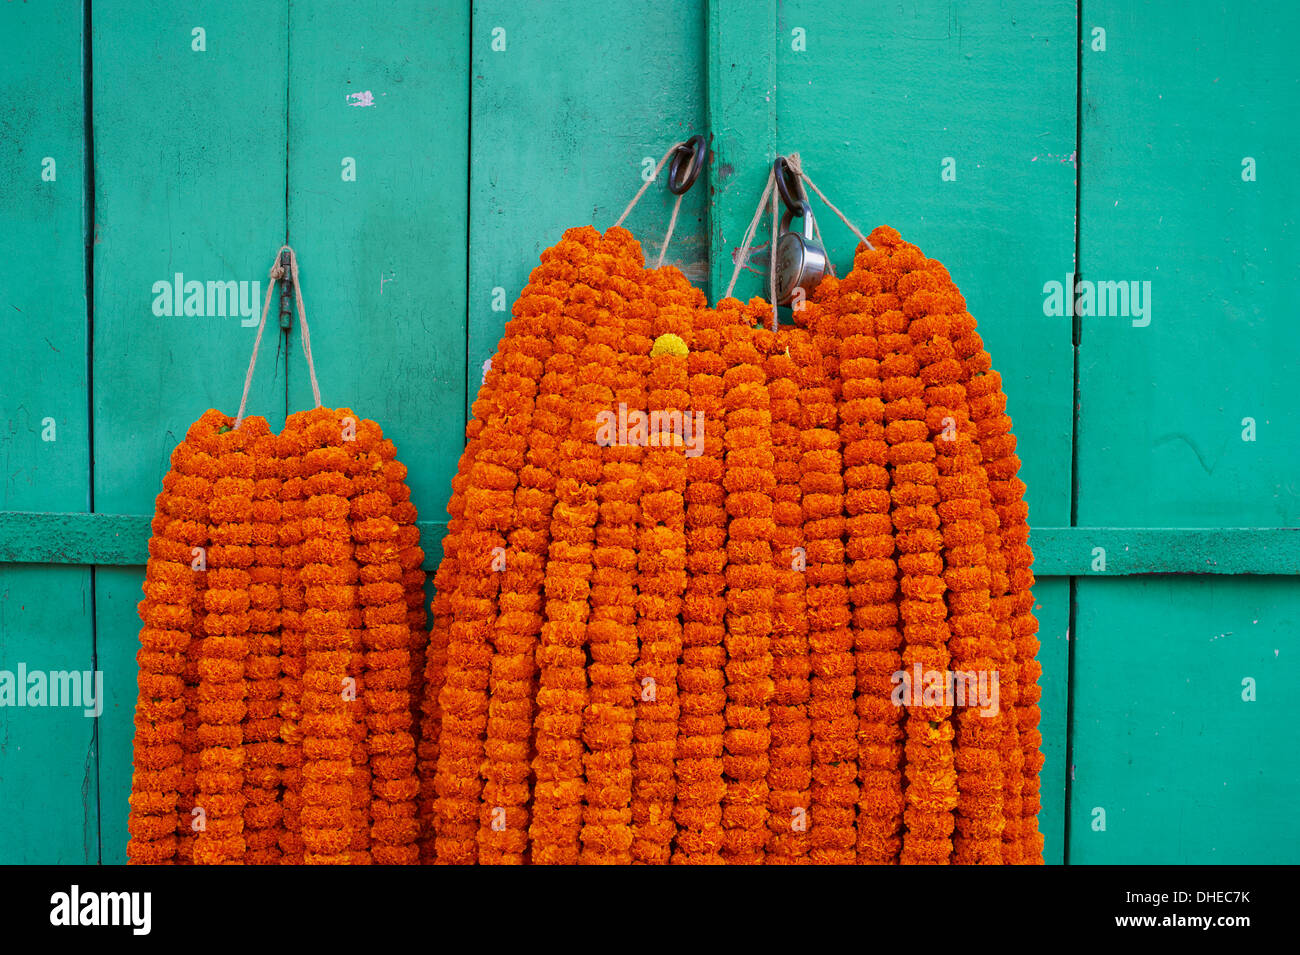 Door, padlock and flower garlands, Kolkata (Calcutta), West Bengal, India, Asia - Stock Image